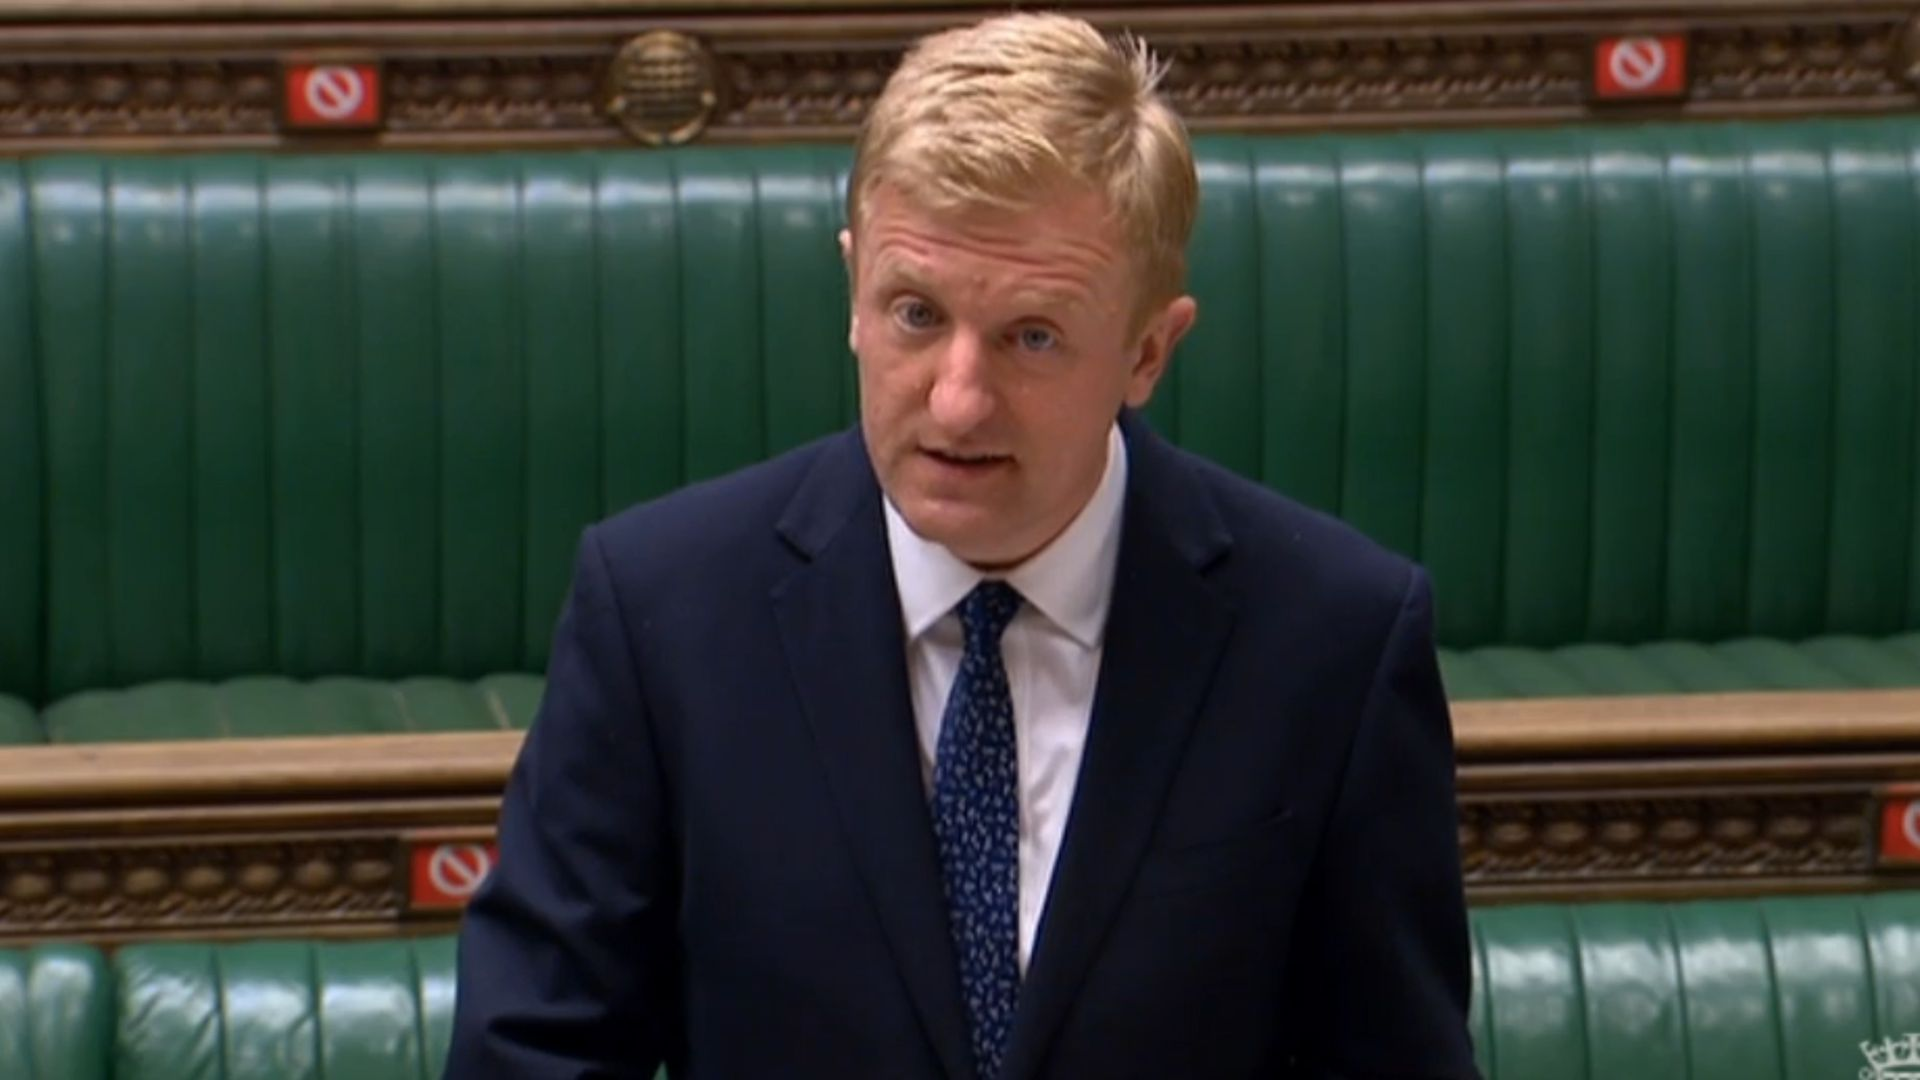 Culture secretary Oliver Dowden said the BBC should 'project British values' or face losing its licence fee - Credit: PA